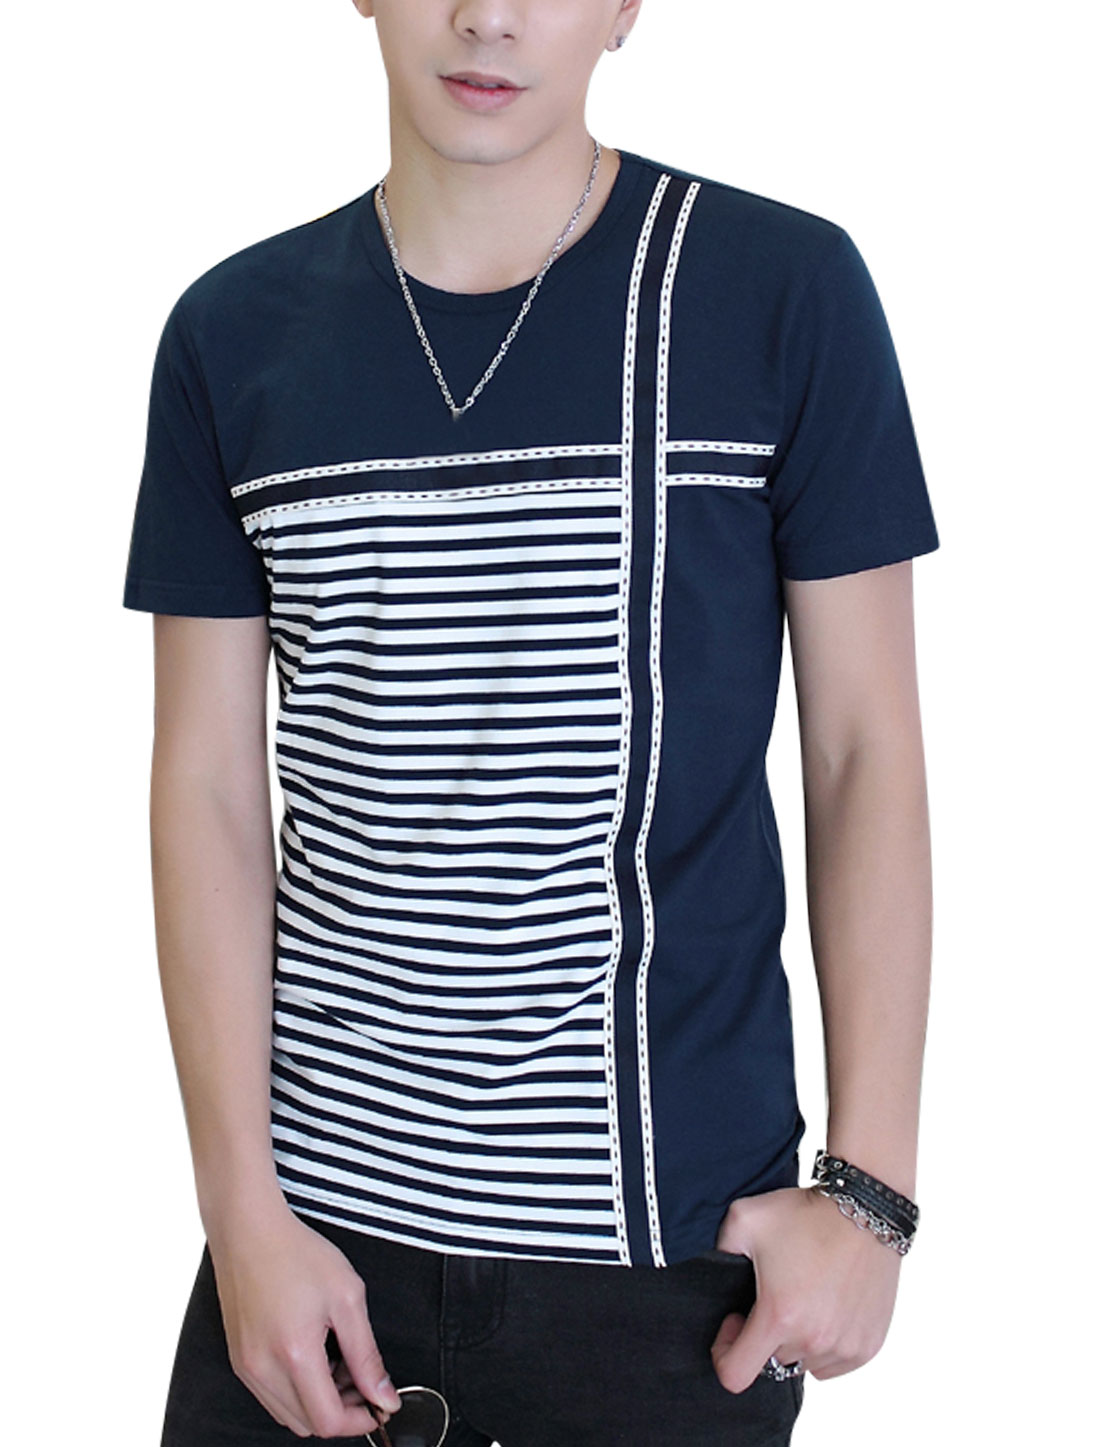 Man Short Sleeves Stripes Panel Design T-Shirts Navy Blue M